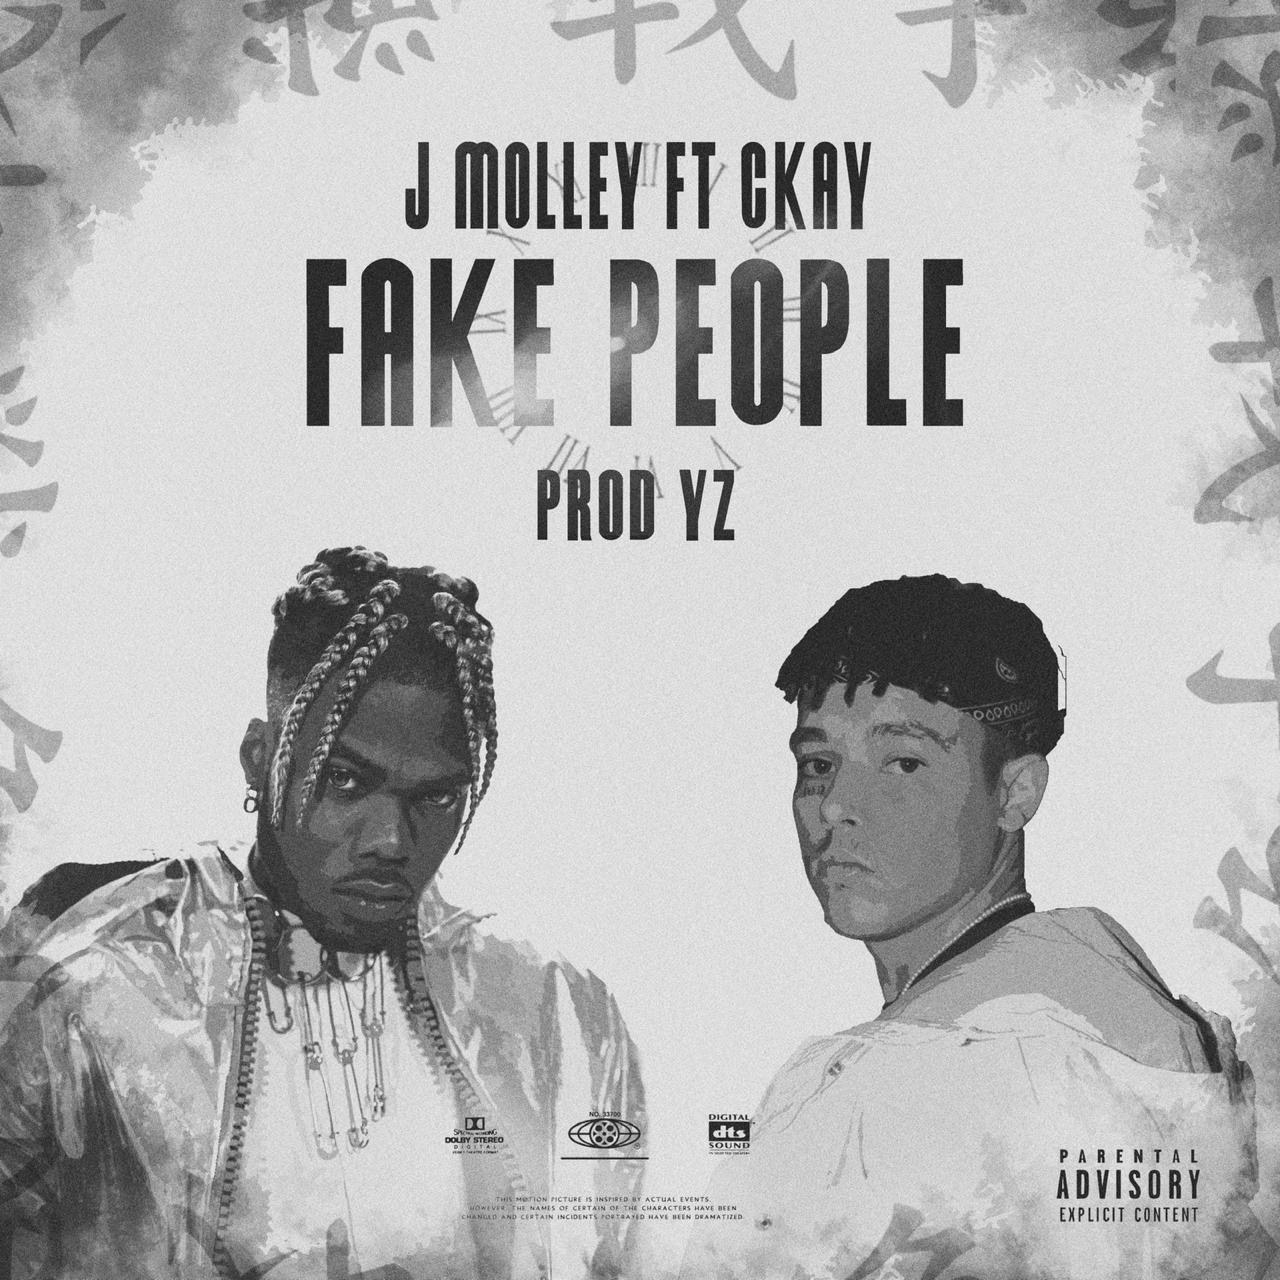 J Molley ft. Ckay – Fake People